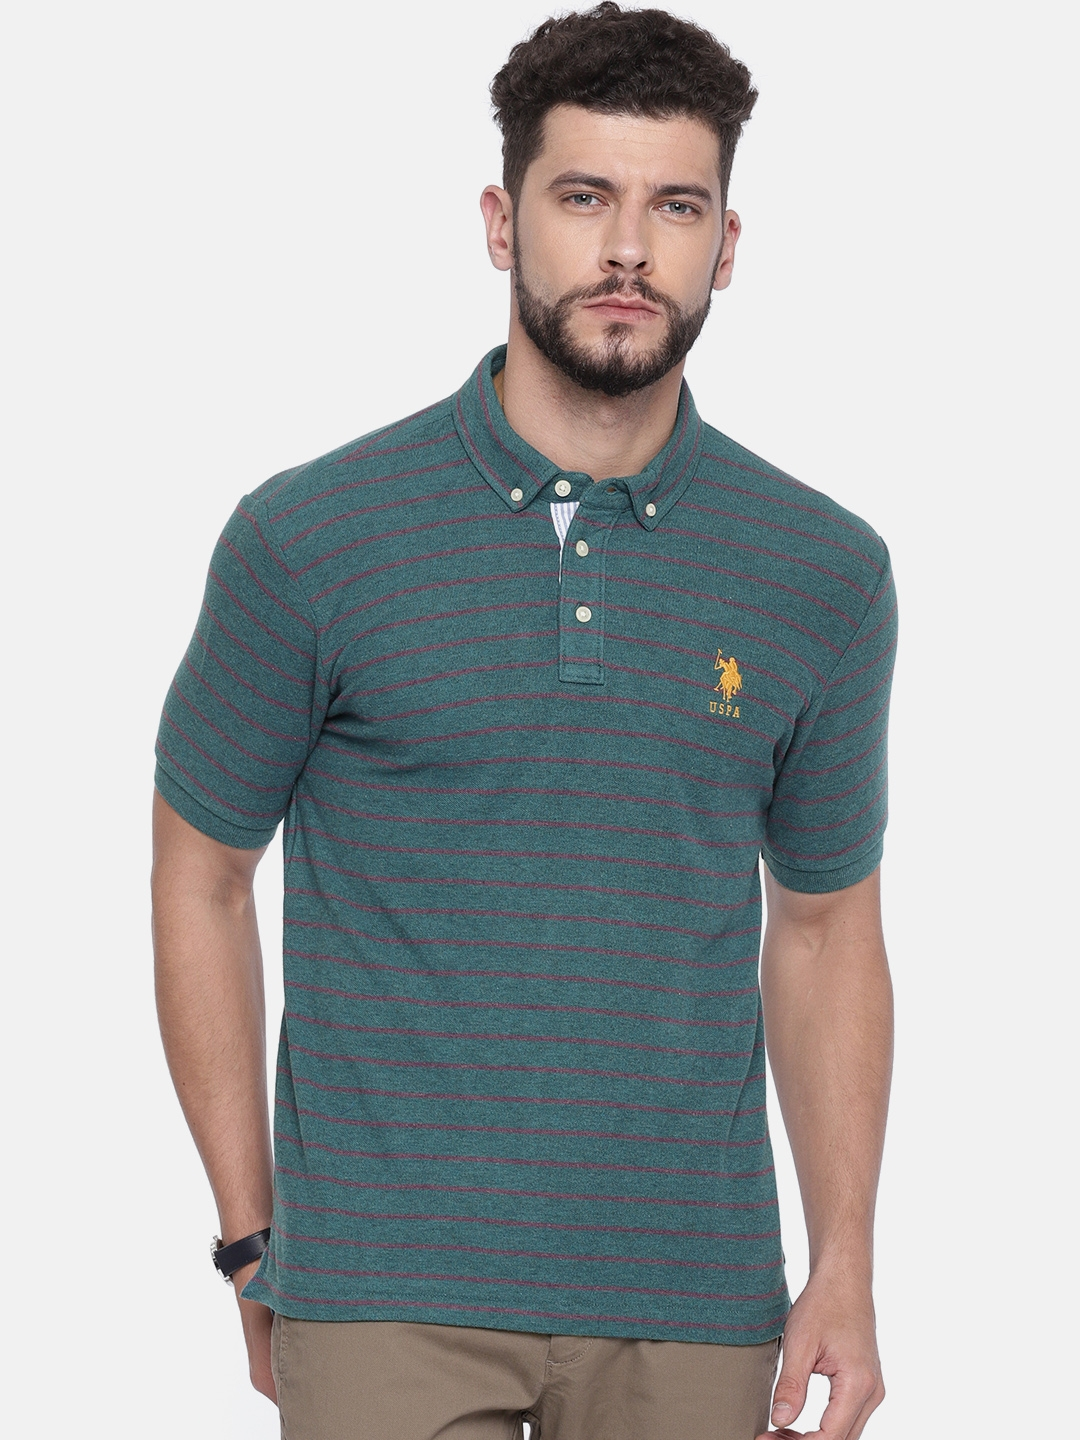 f63667f8d Buy U.S. Polo Assn. Men Teal Blue Striped Polo Collar T Shirt ...